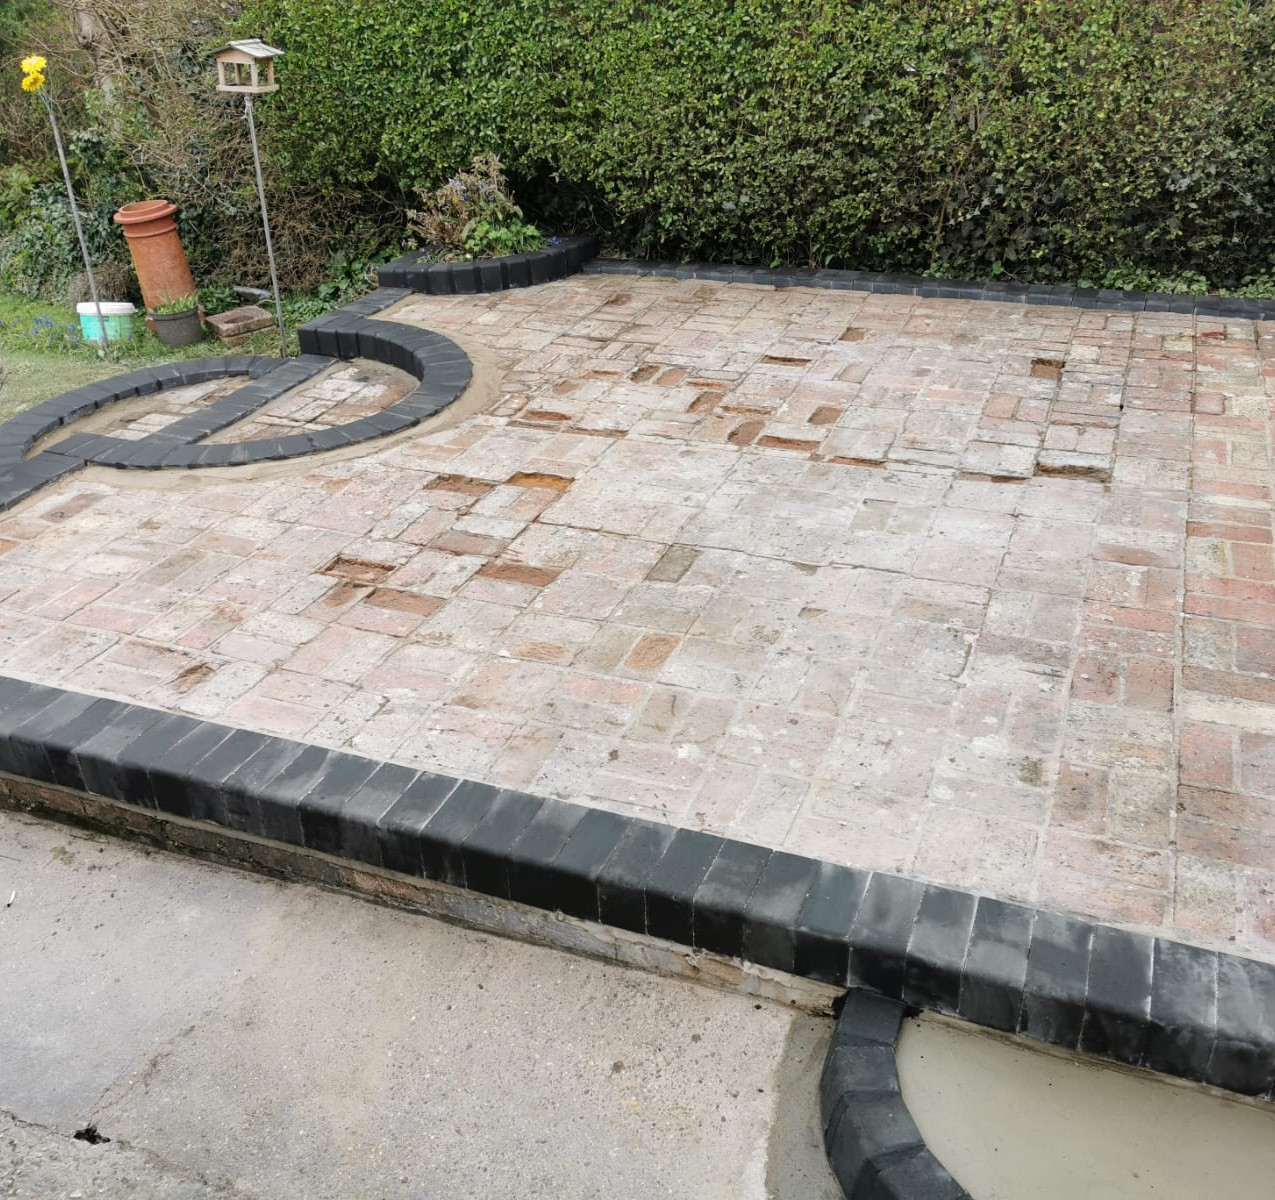 Patio with blocks down